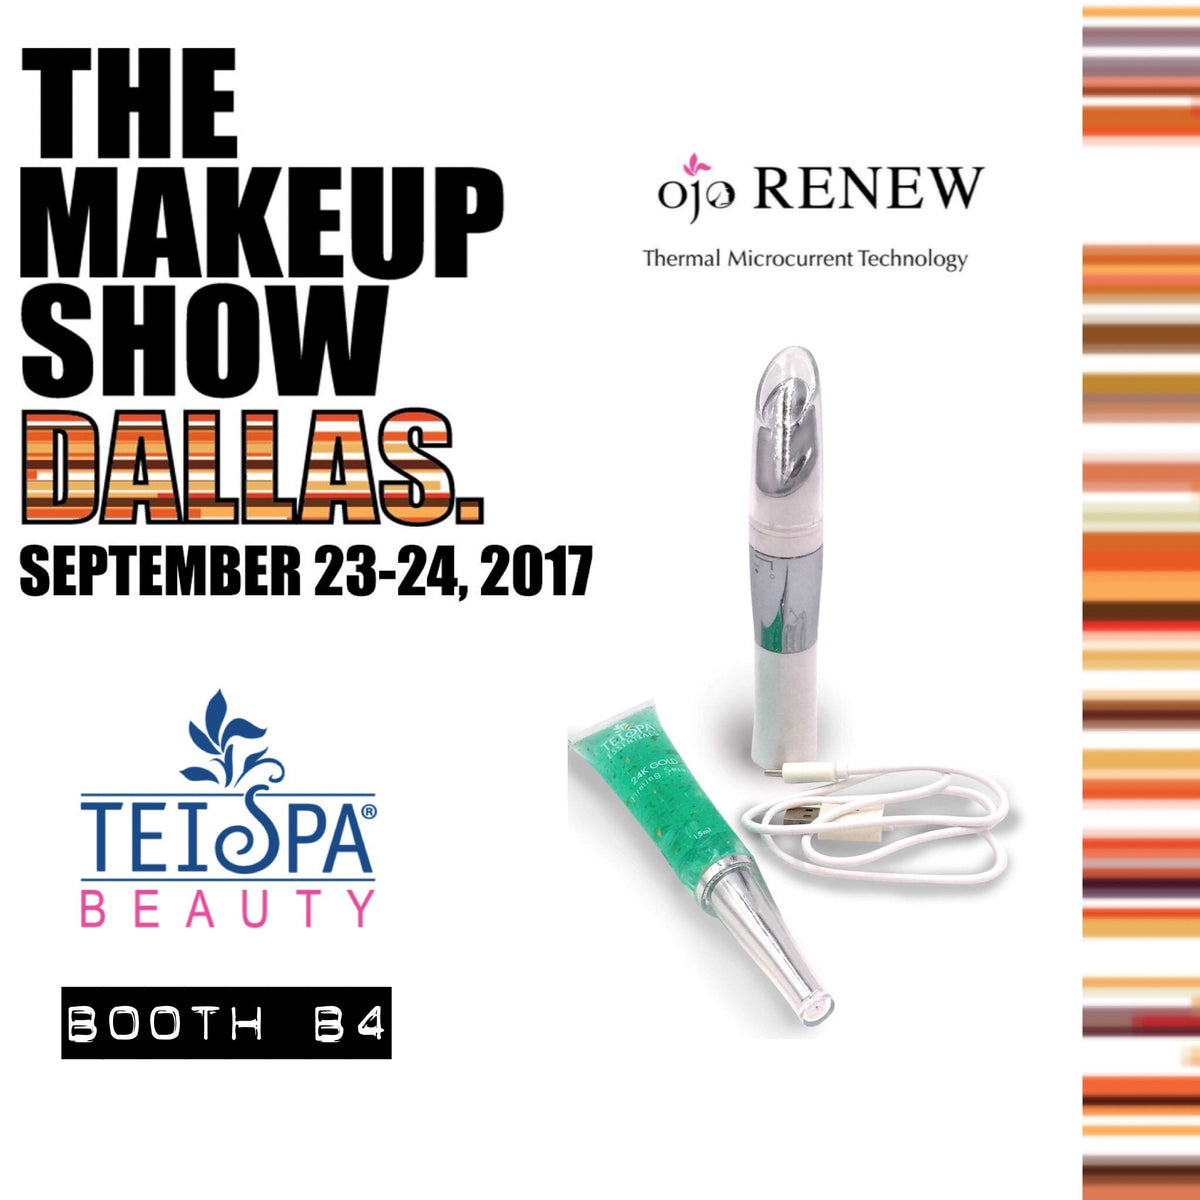 Hey Texas! We'll be @THEMAKEUPSHOW IN DALLAS - BOOTH B4  -